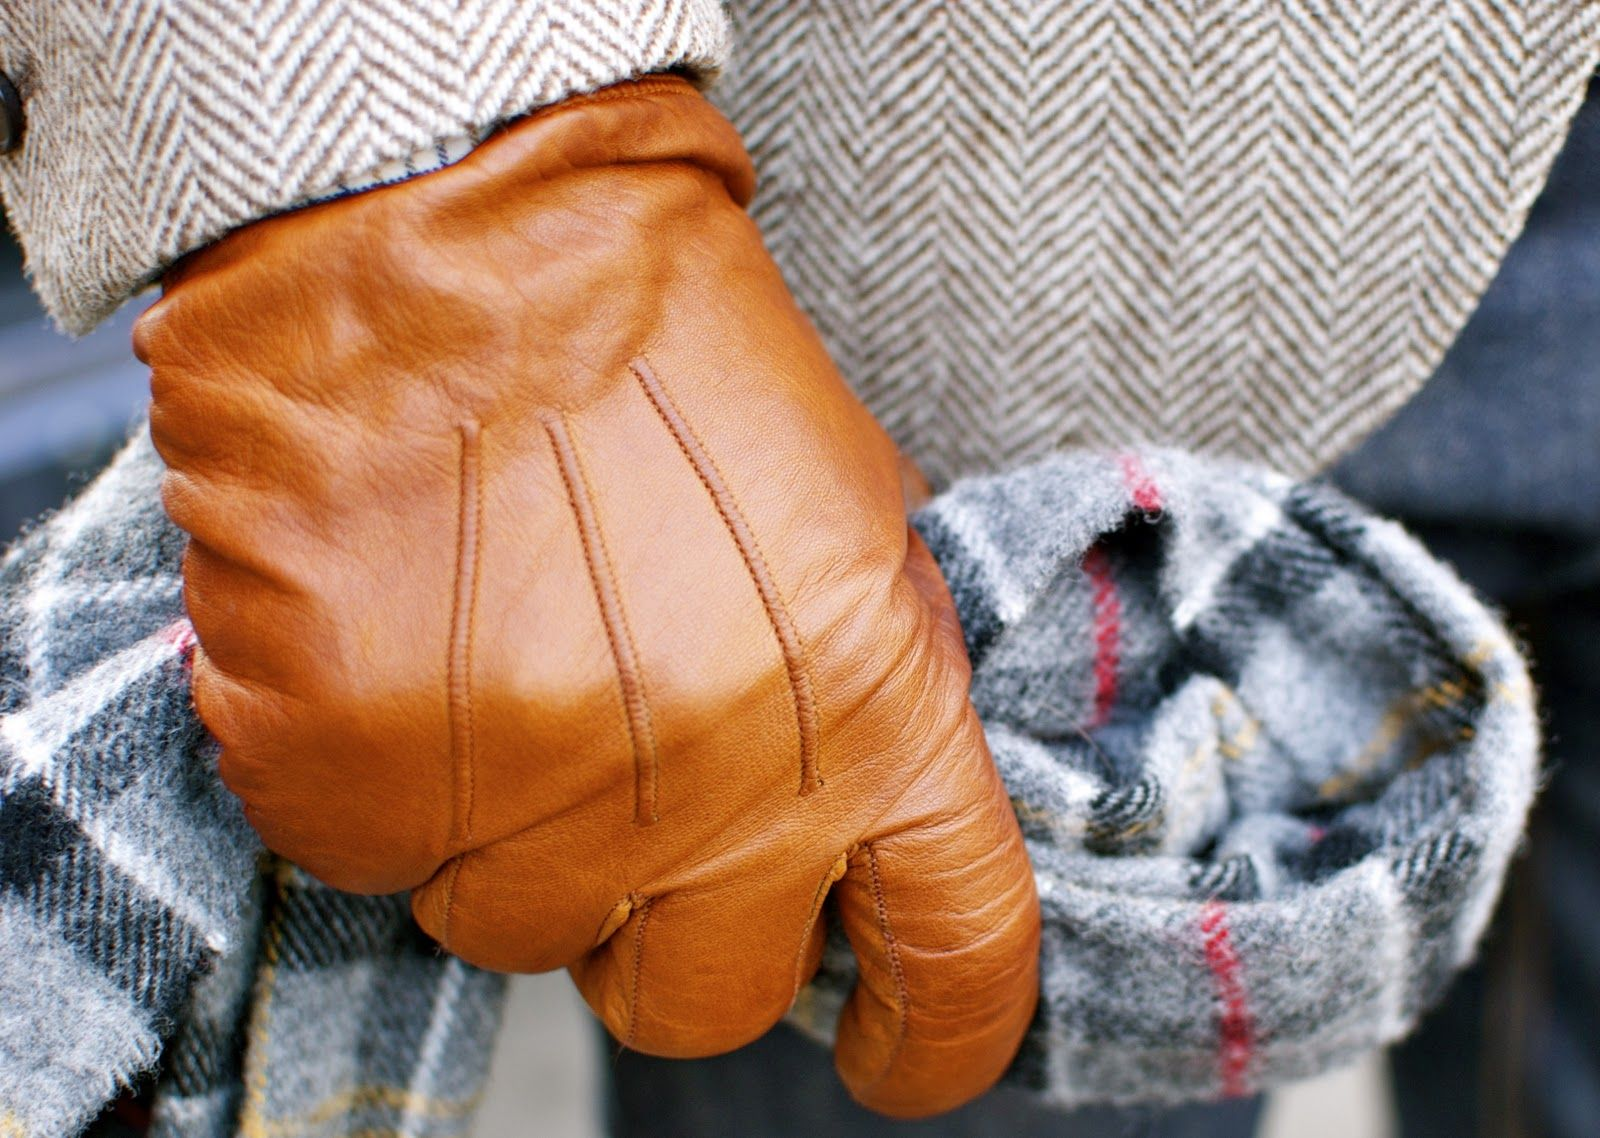 Black or brown leather gloves - Although Generally I Wear Black Or Red Leather Gloves I Have Always Wanted A Pair Like These Silly As It May Sound They Make Me Think Of The Time Between